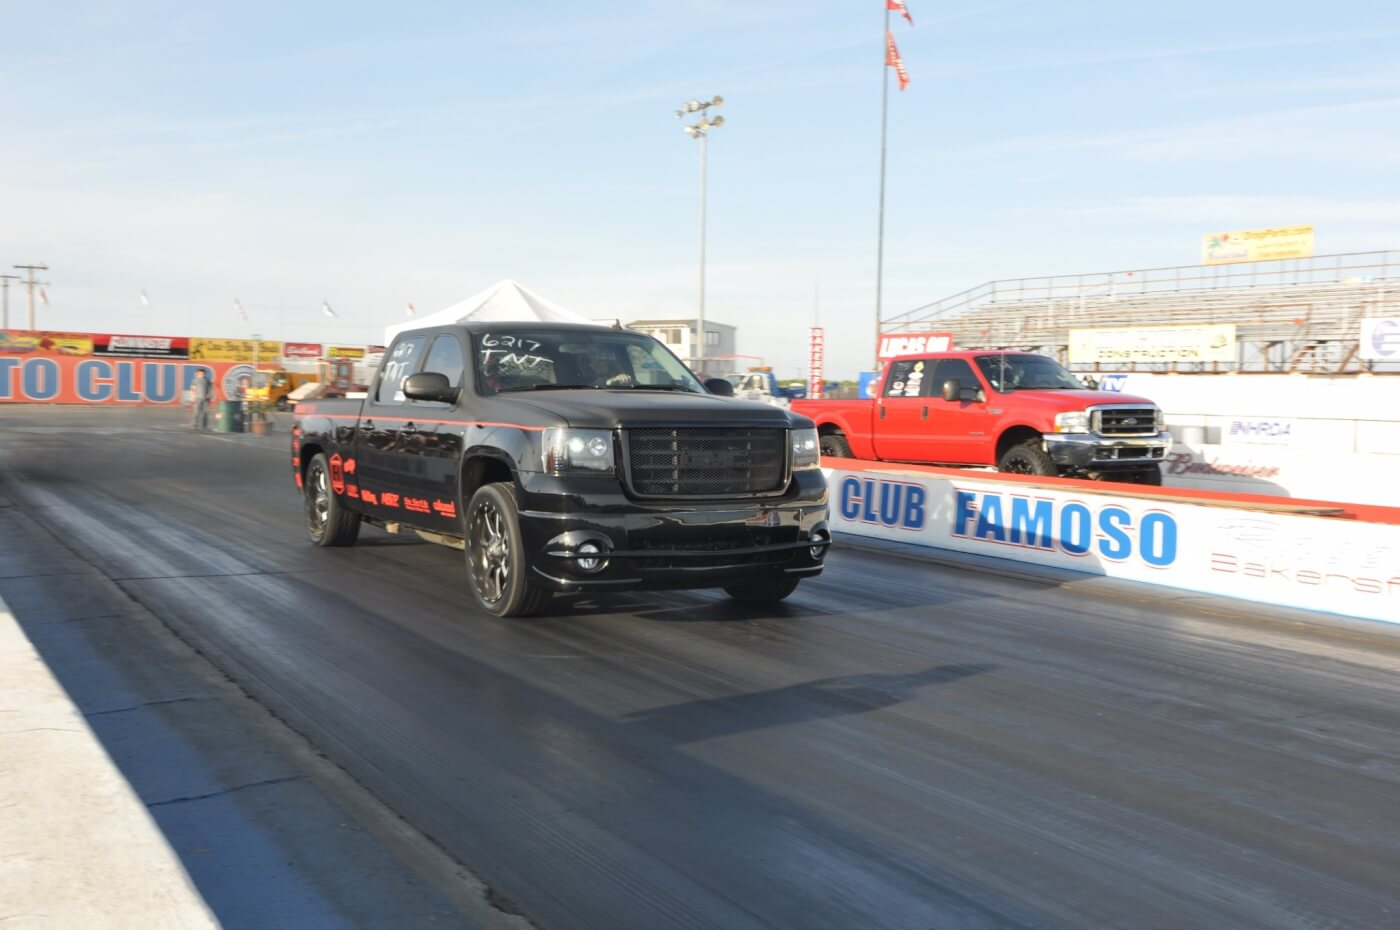 Mike of Dmax Store brought out his new toy, an LMM-powered GMC, to compete.